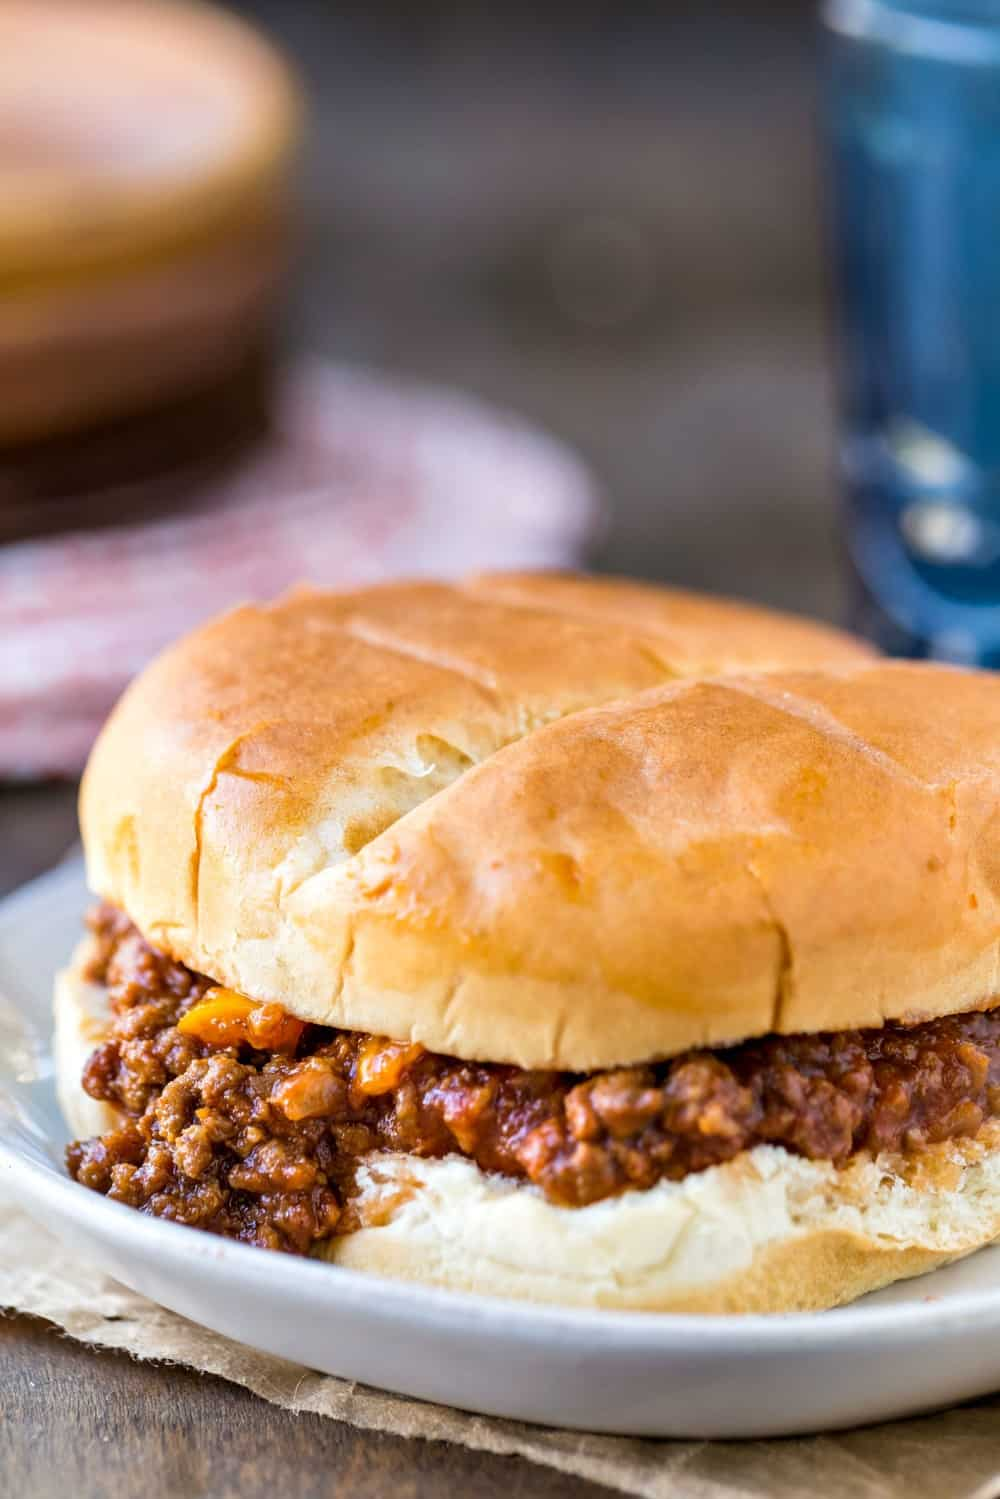 Crock pot sloppy joes on a white plate next to a blue glass